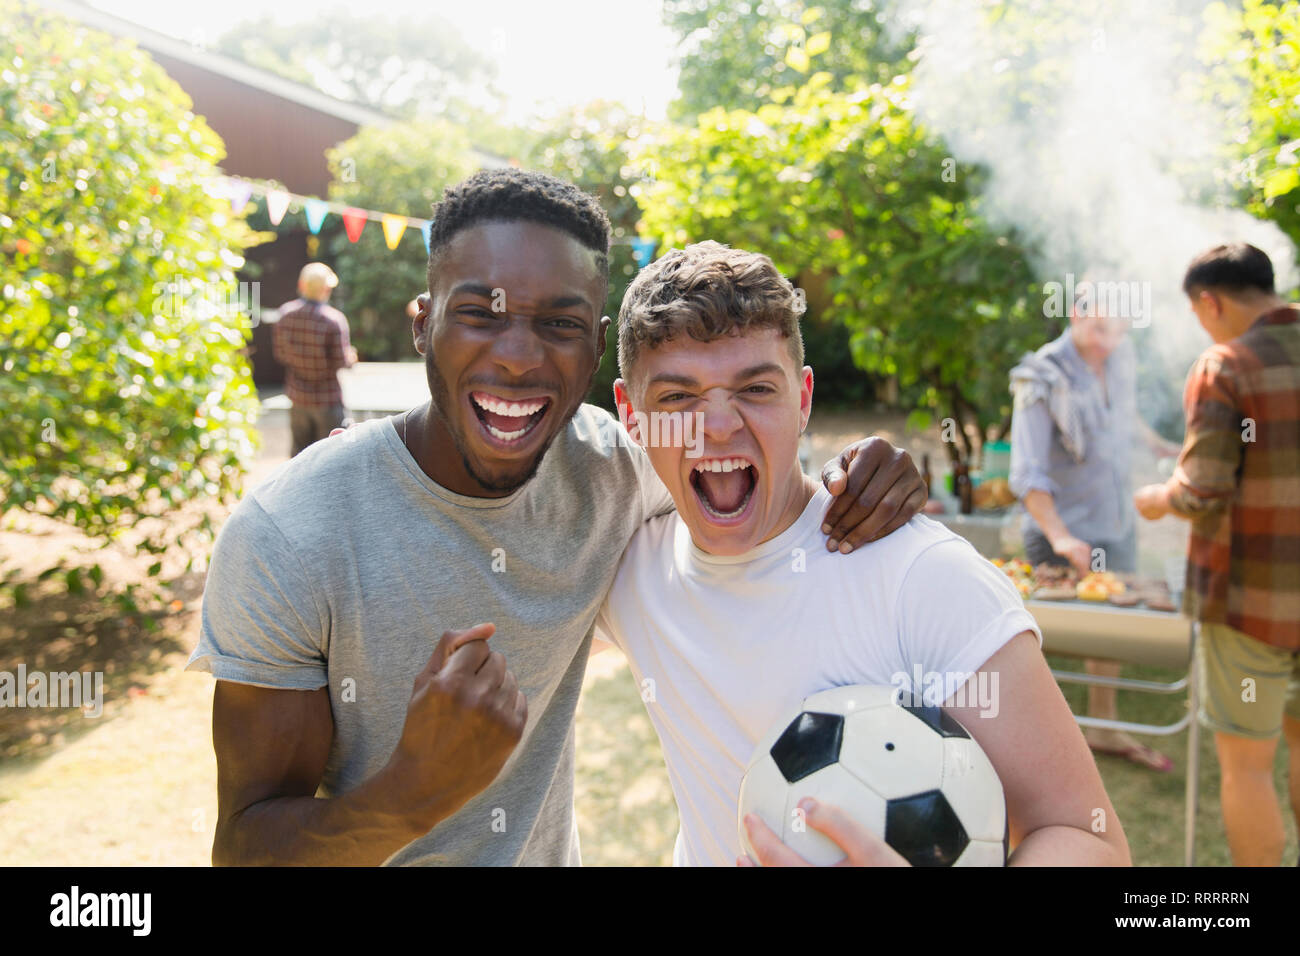 Portrait enthusiastic young men with soccer ball cheering, enjoying back yard barbecue - Stock Image